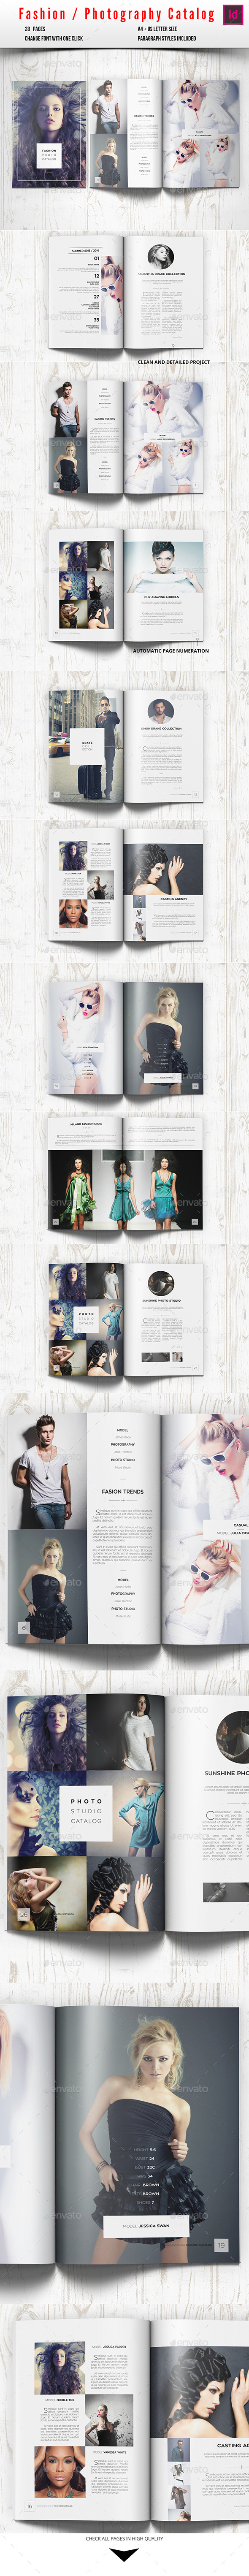 GraphicRiver Fashion Photography Catalog Brochure 10277338